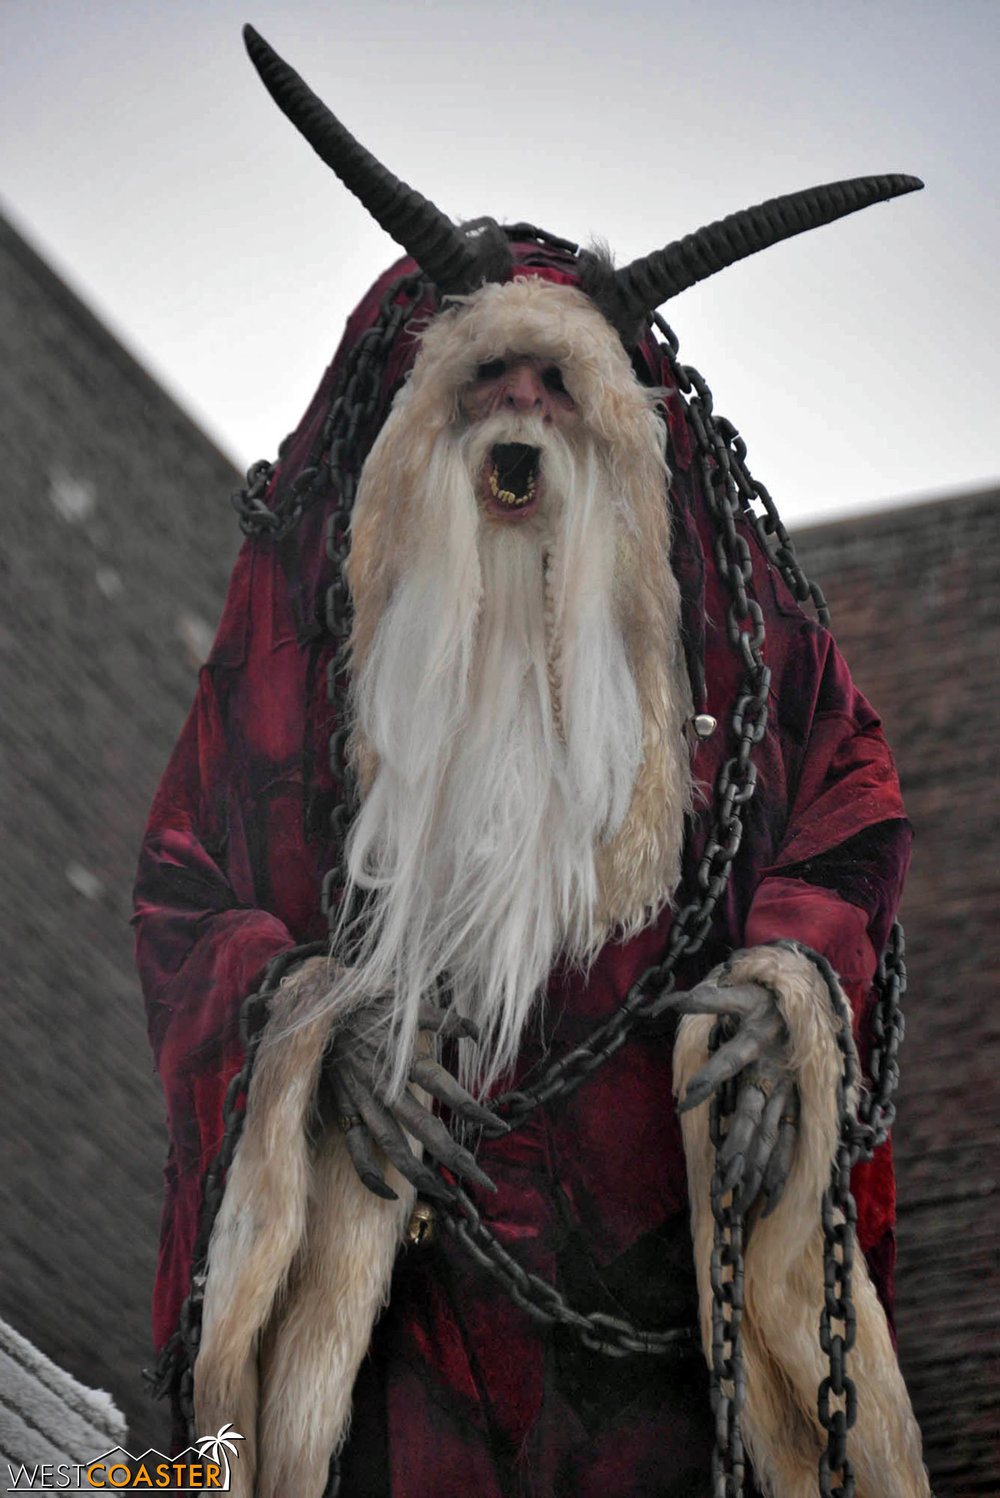 The Krampus himself.